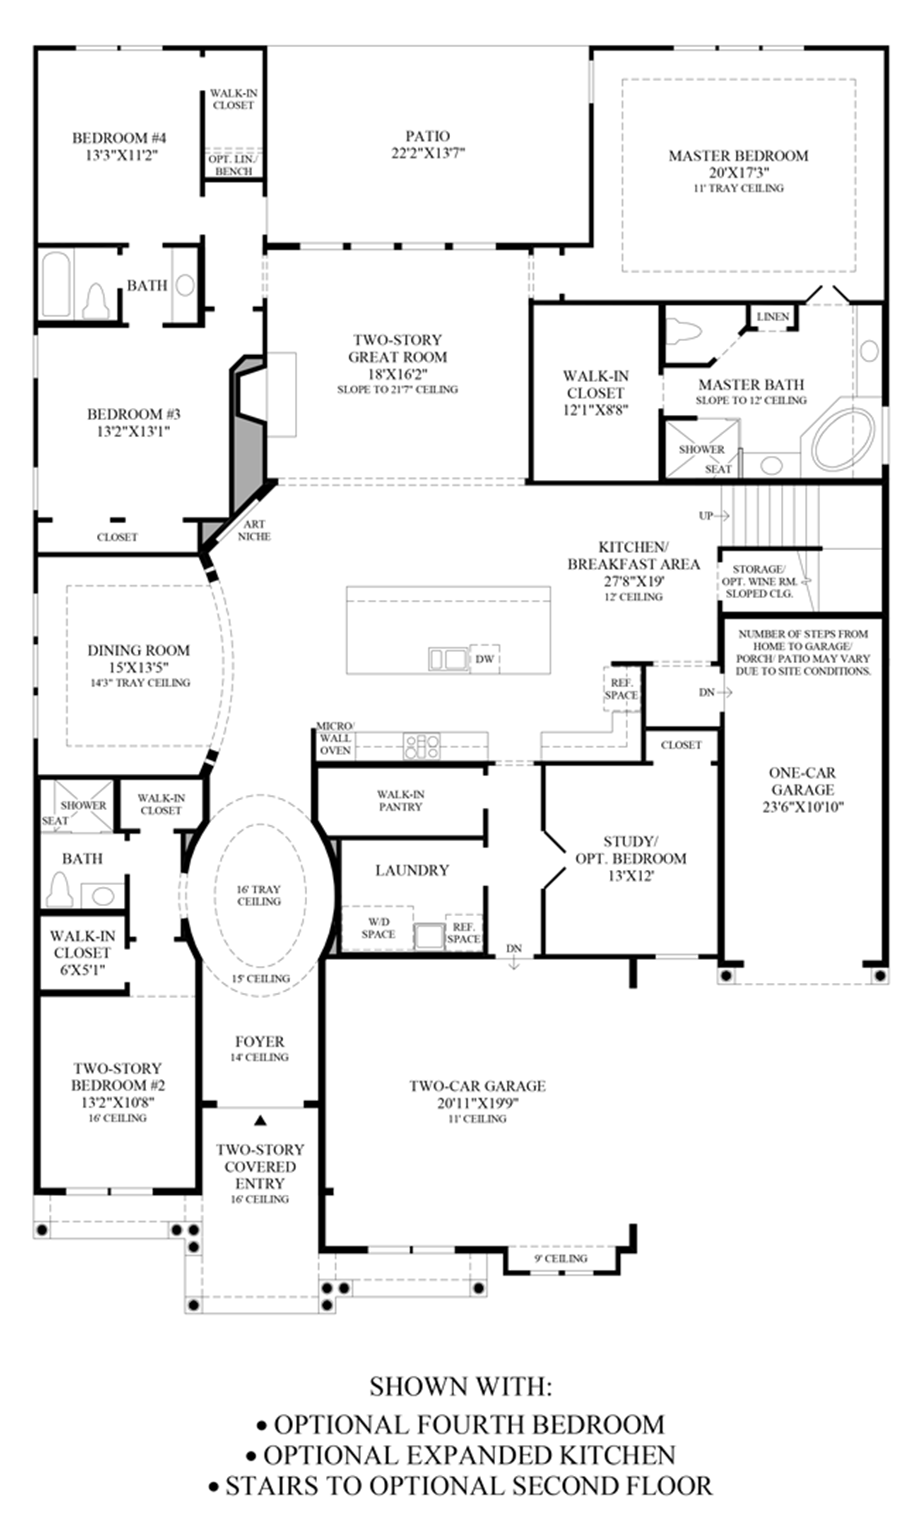 Optional Stairs to 2nd Floor, Expanded Kitchen & 4th Bedroom Floor Plan